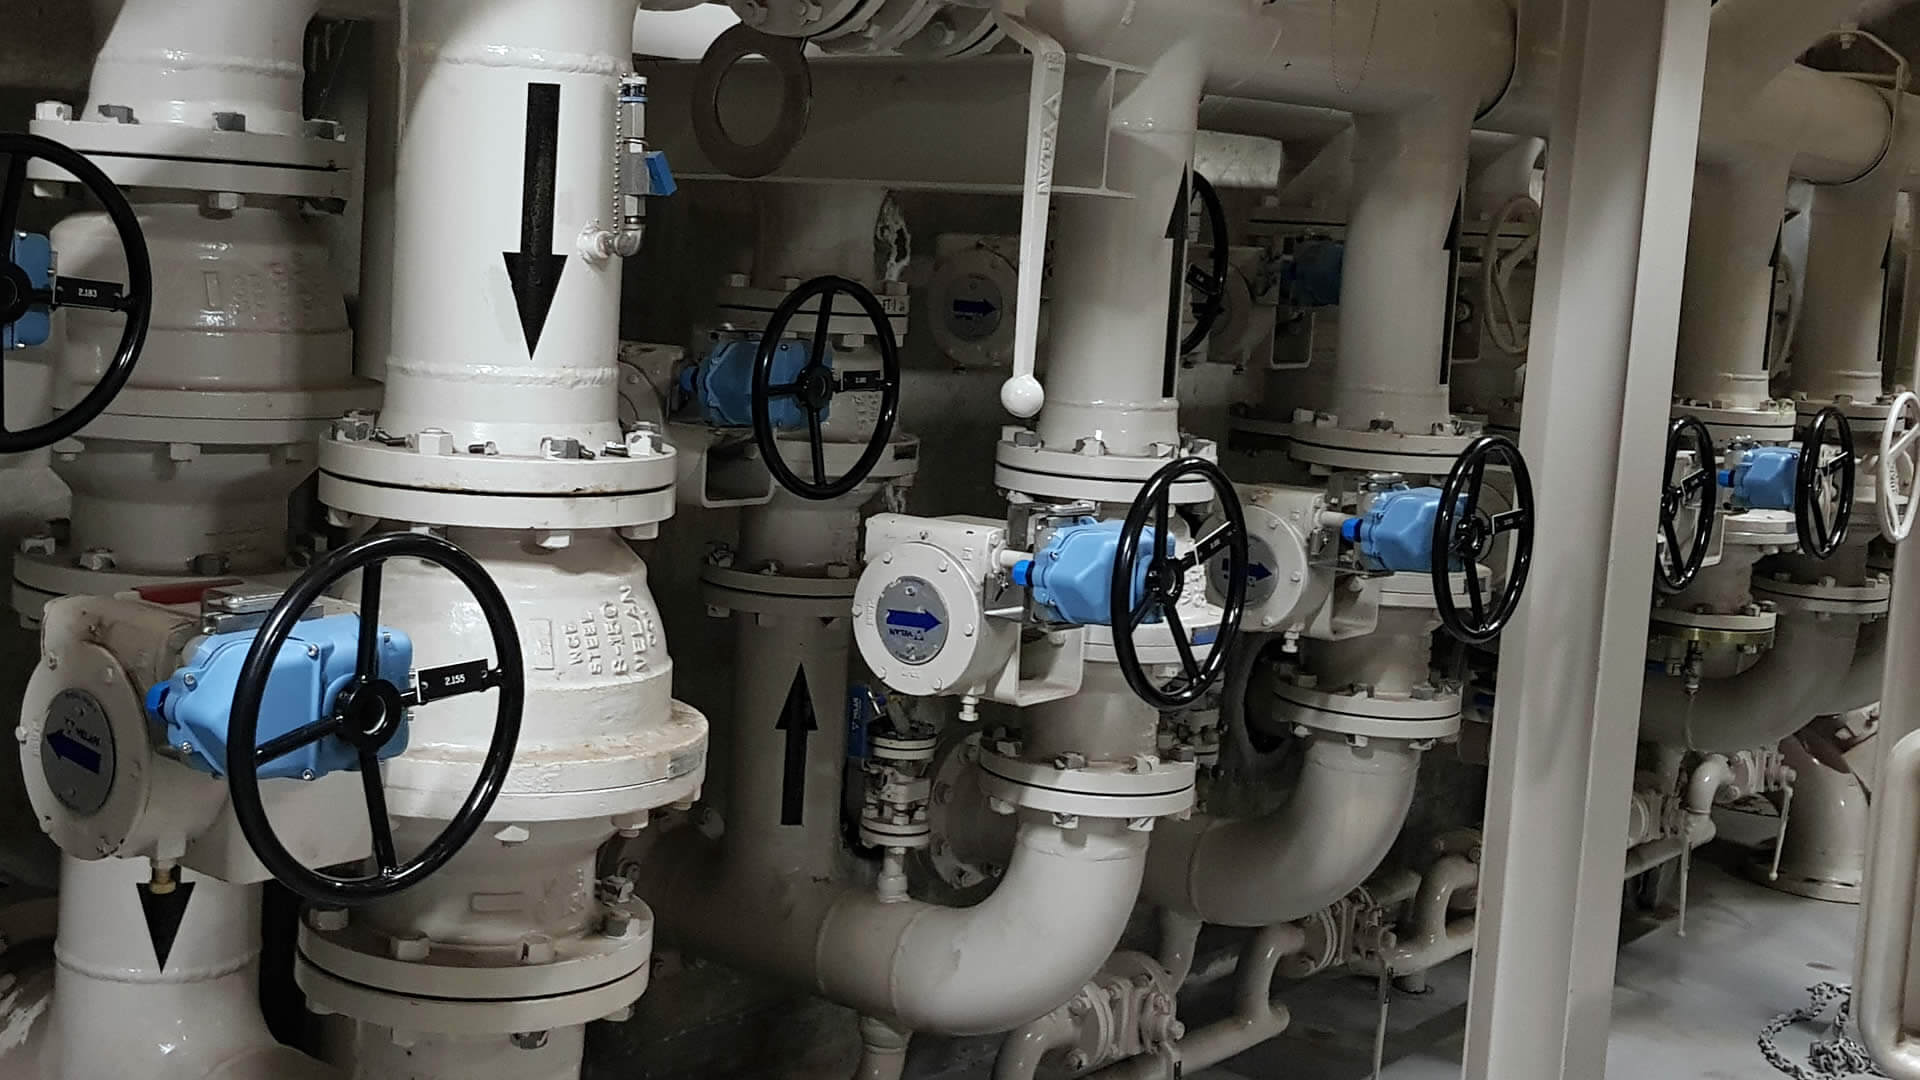 Valve position indicators are used to prevent valve misalignments during product handling